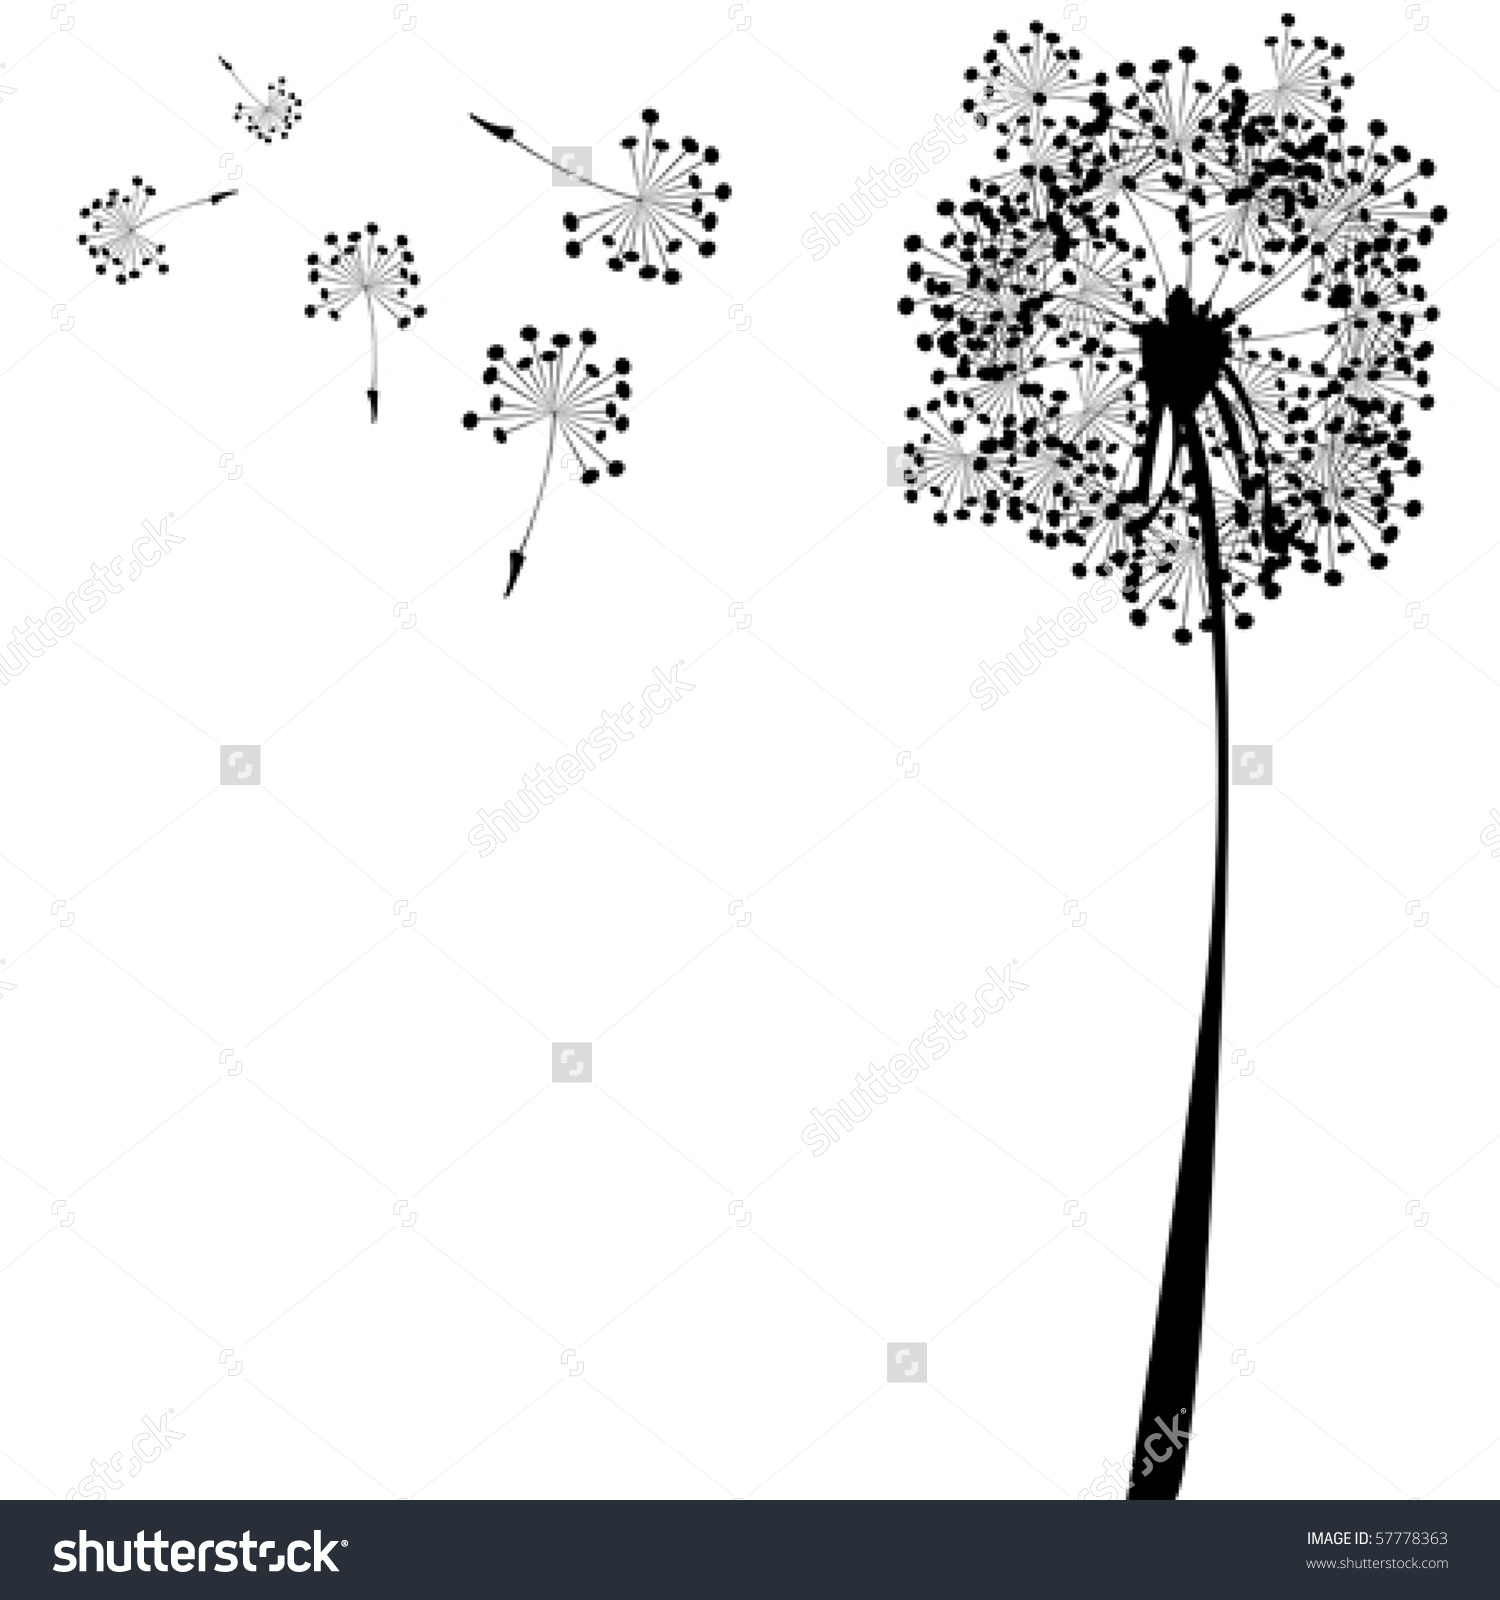 Similiar Abstract Dandelion Clip Art Keywords.